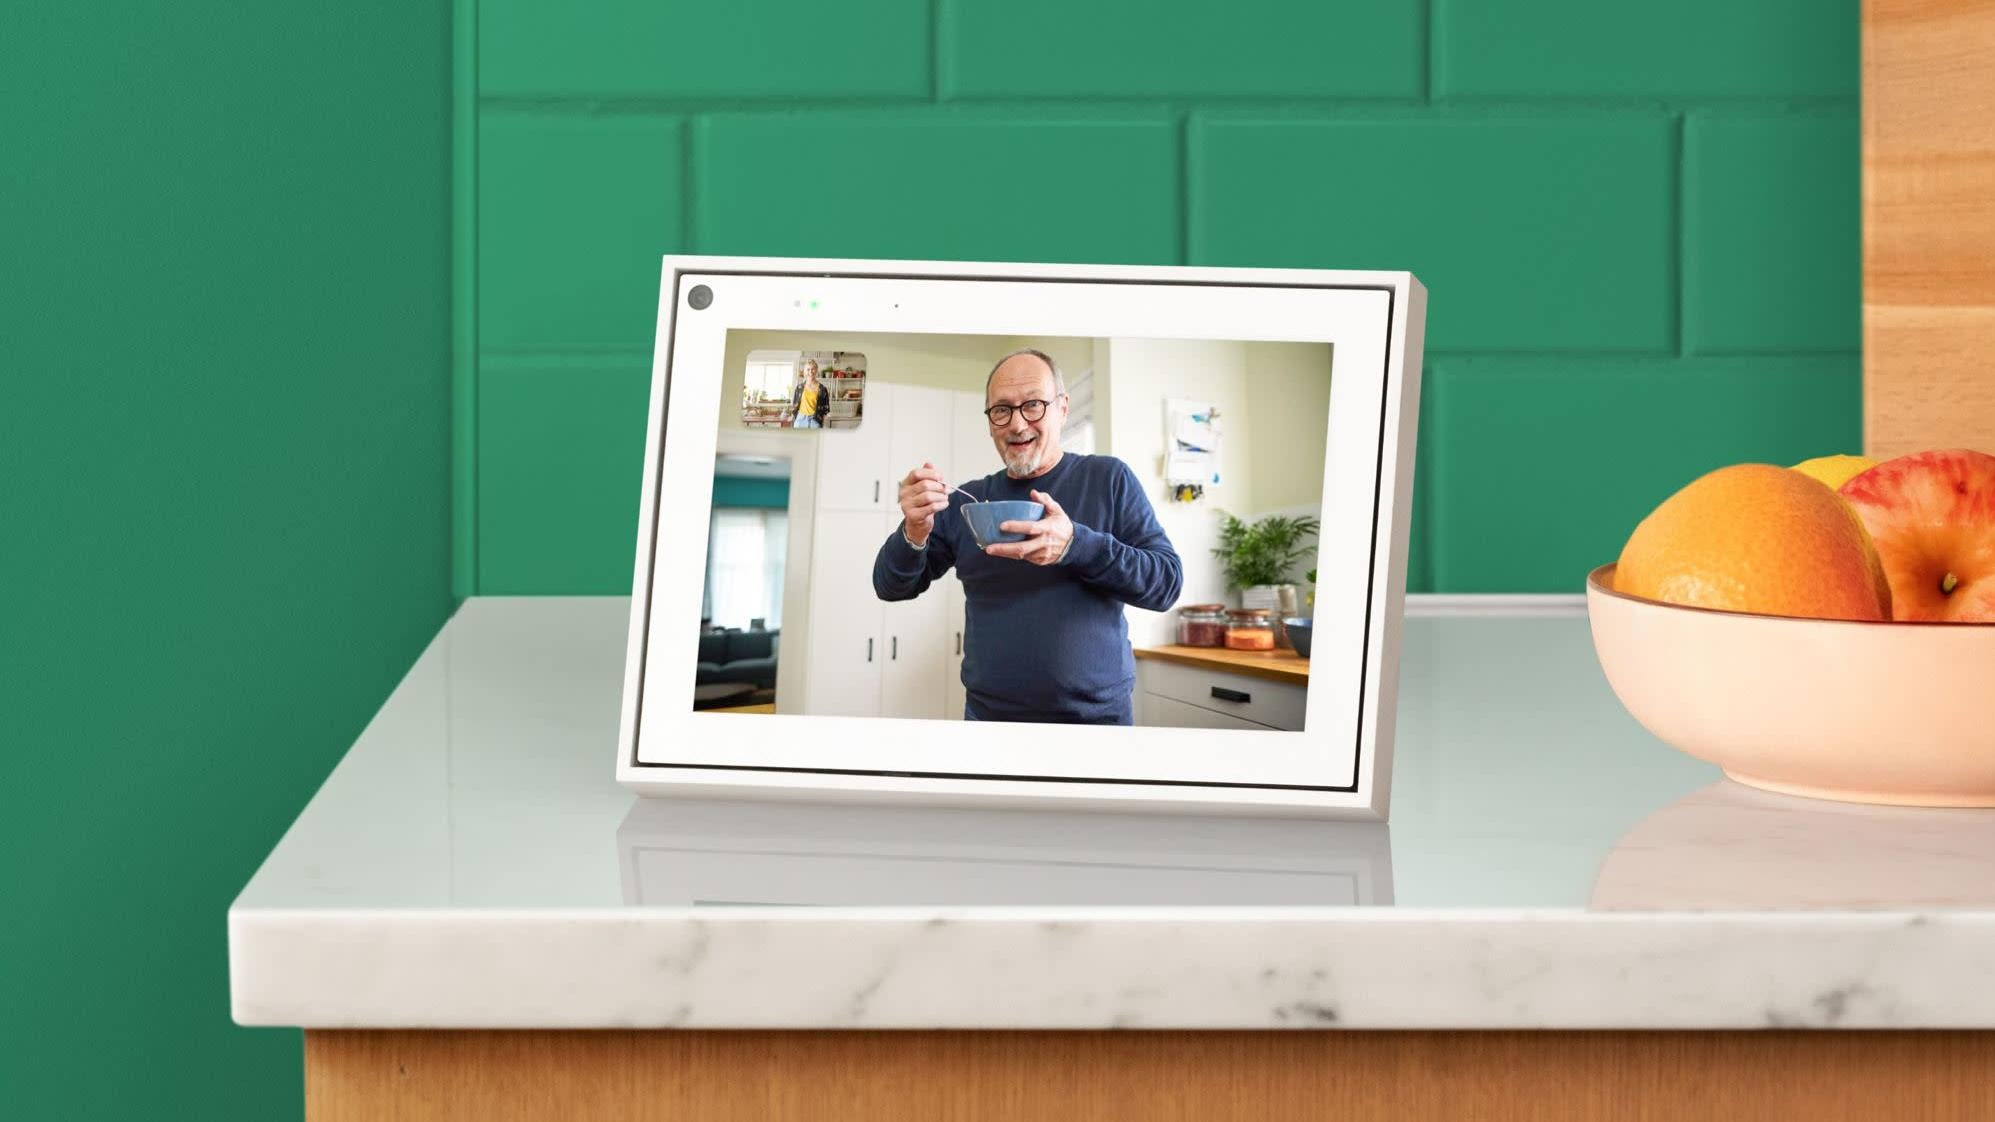 Facebook Launches Three New Portal Devices No One Asked For